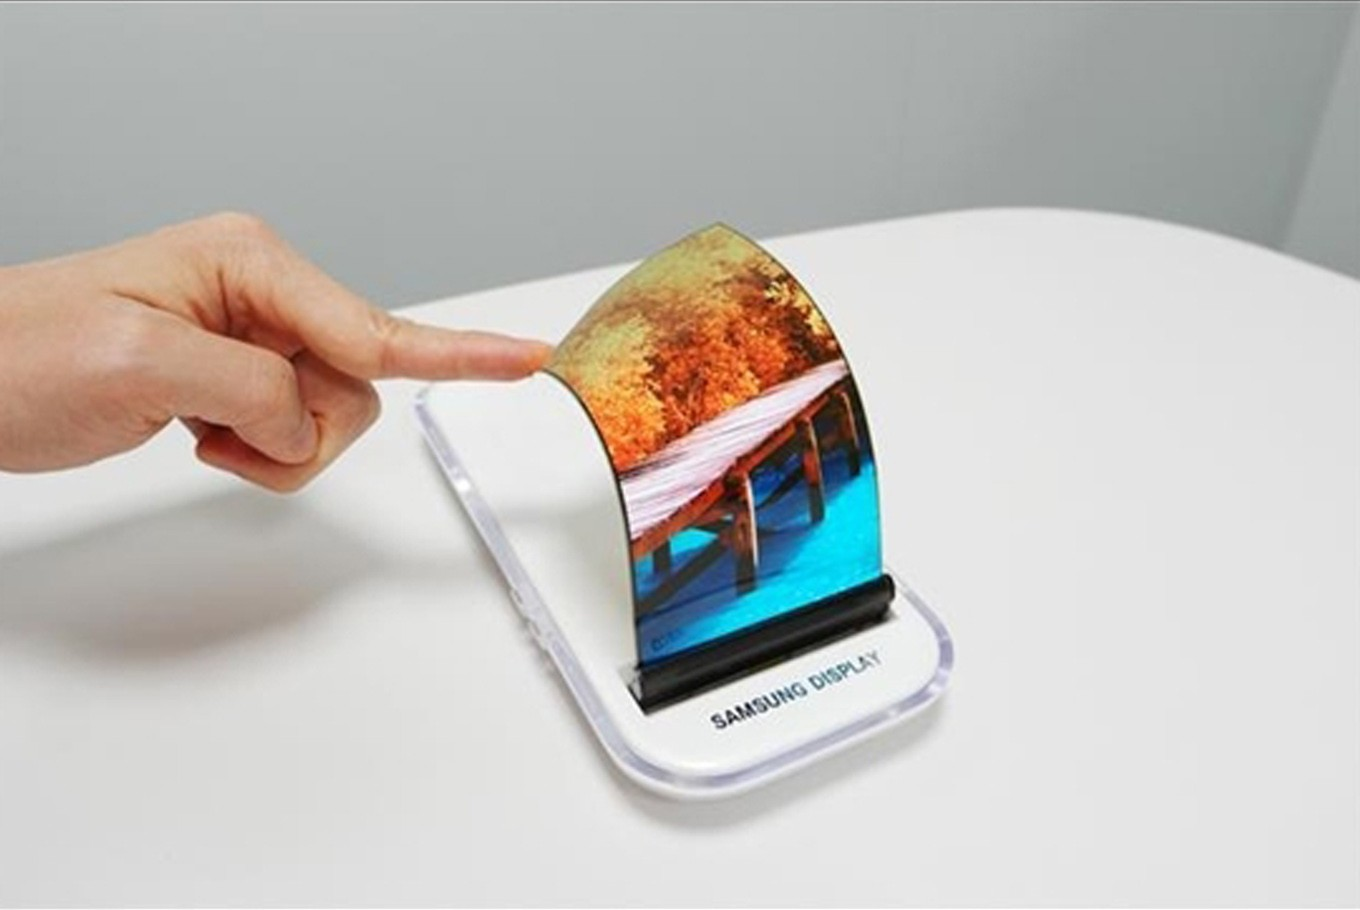 Samsung likely to unveil foldable phones in Q3: source